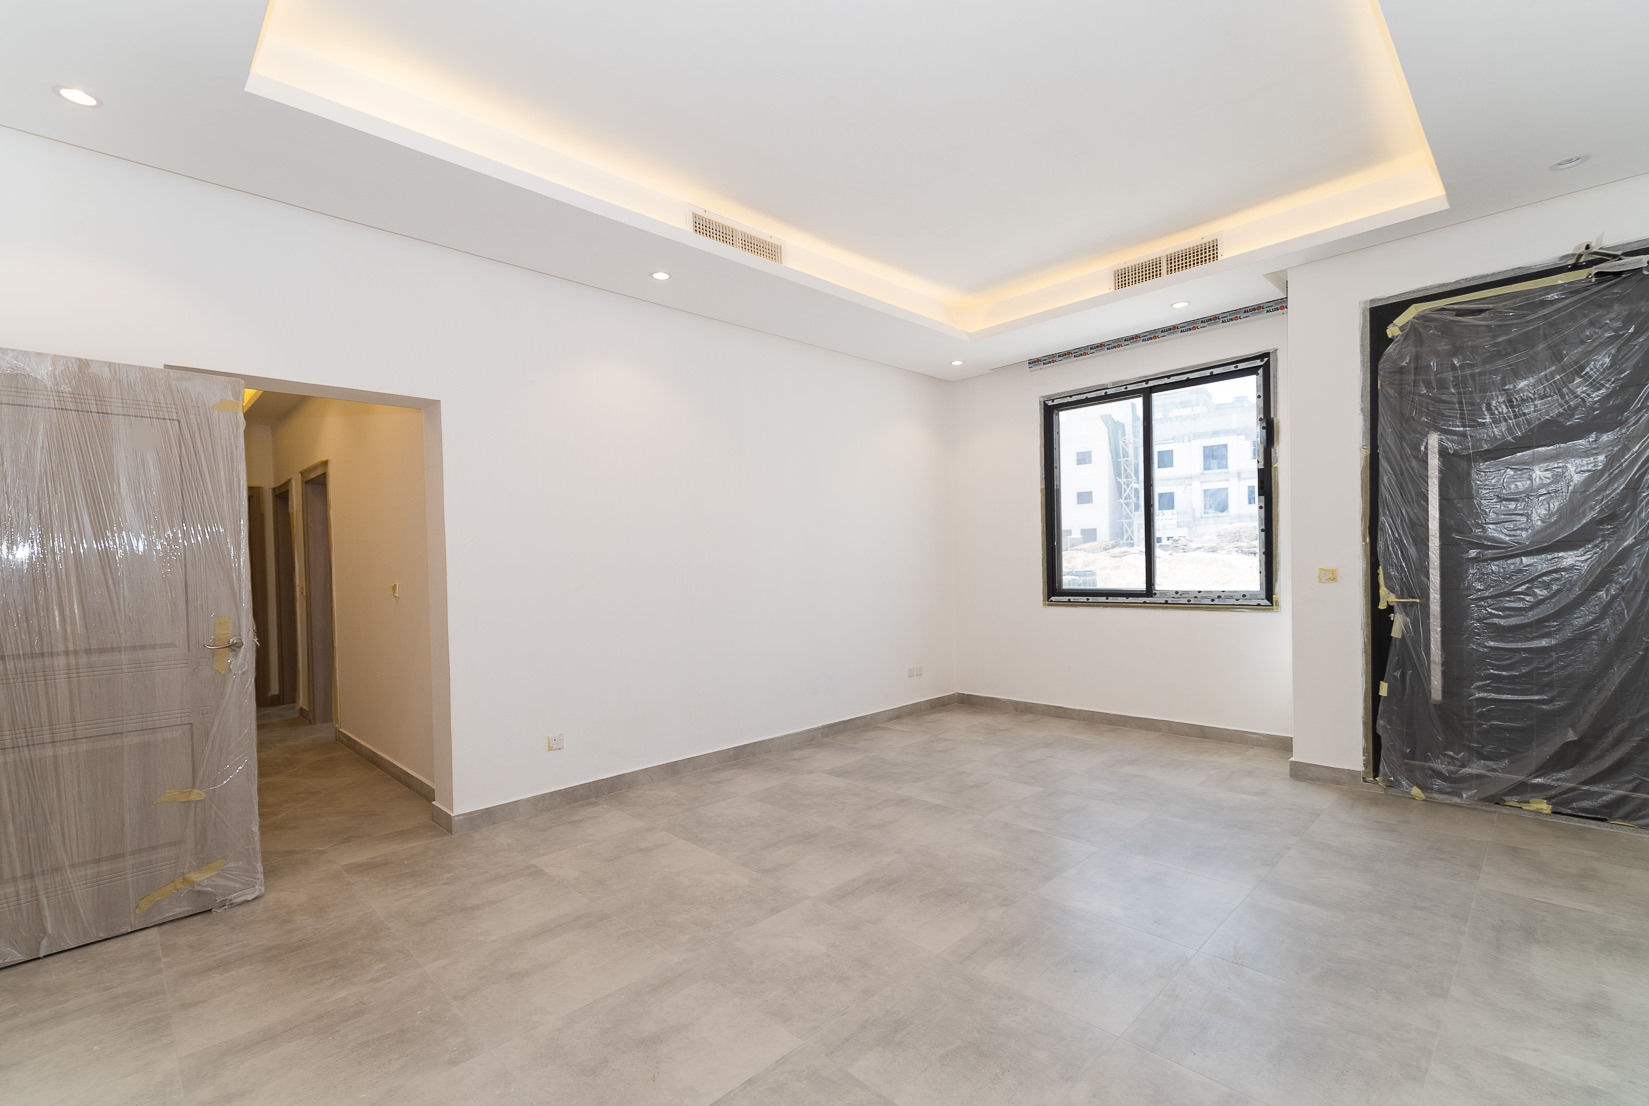 Fnaitees – new, unfurnished, three bedroom apartments